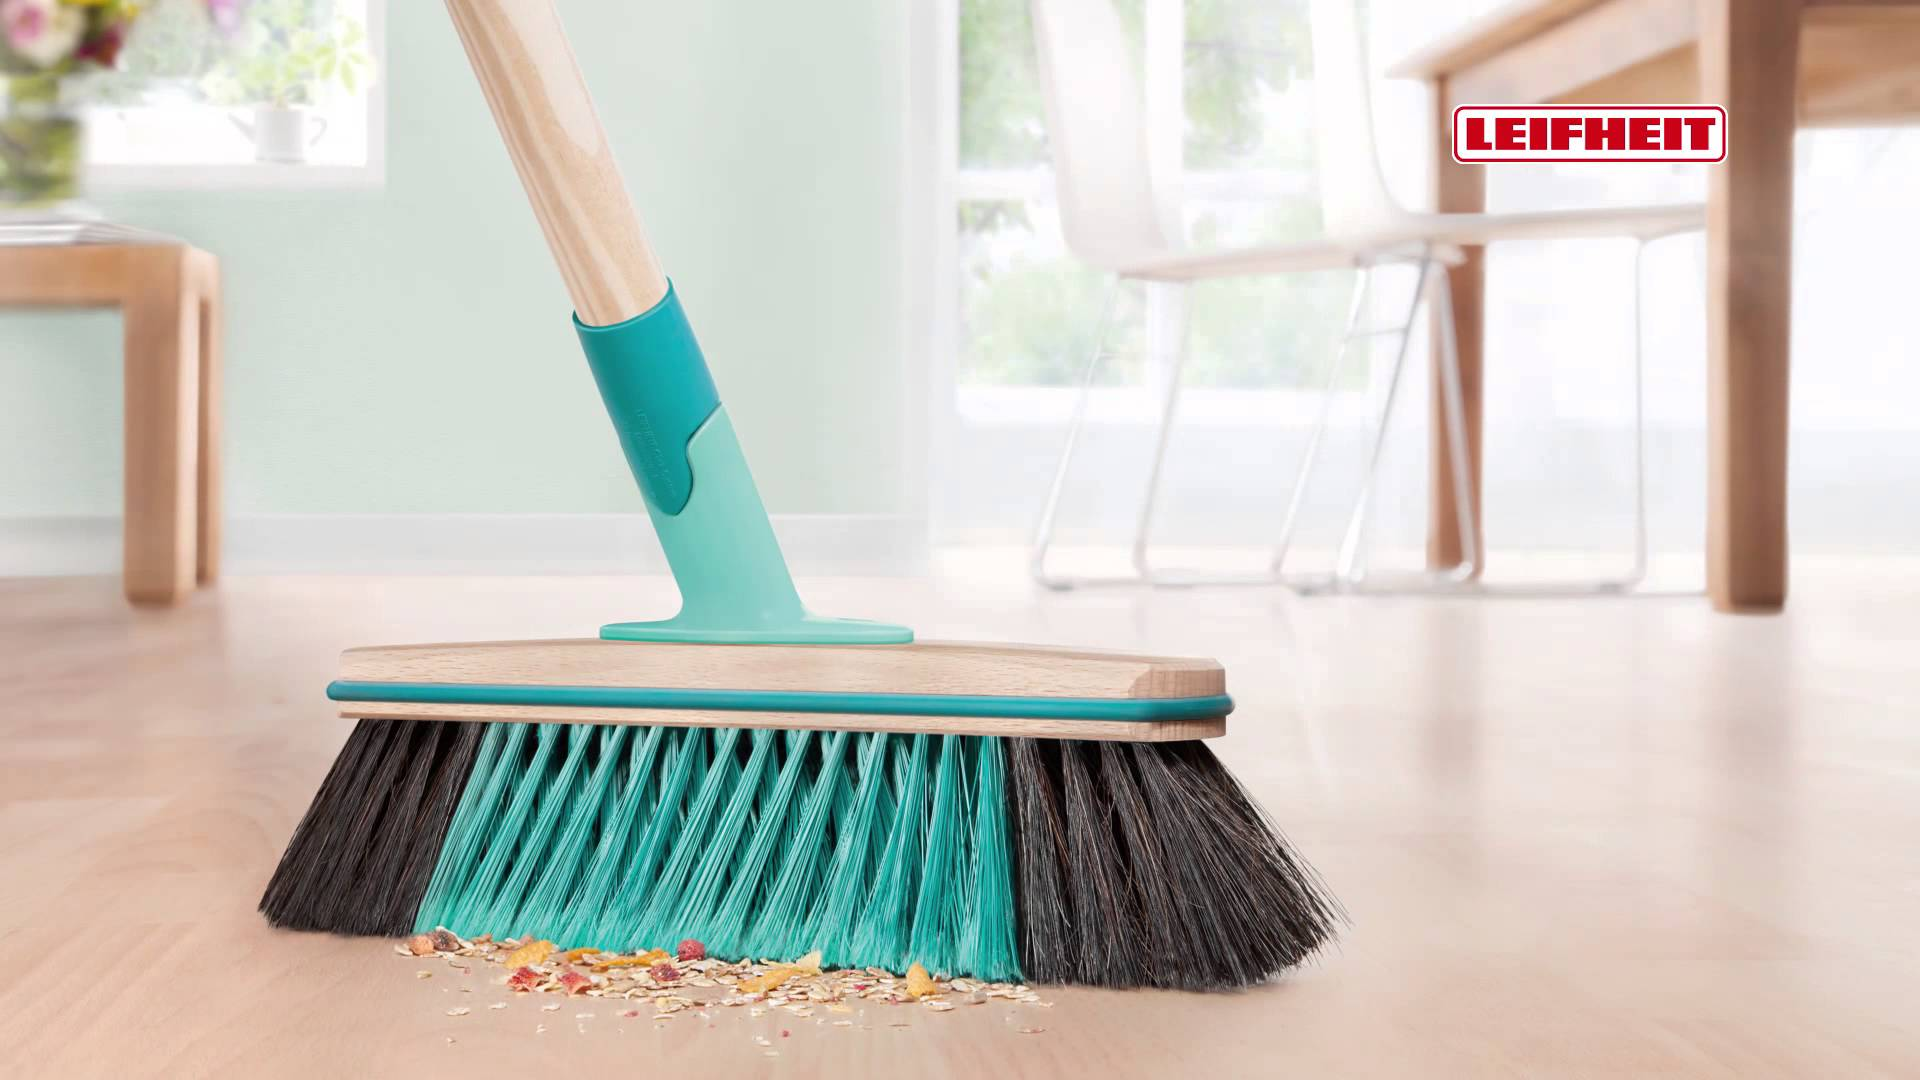 Leifheit Xtra Clean - the new brooms from Leifheit with unique X ...